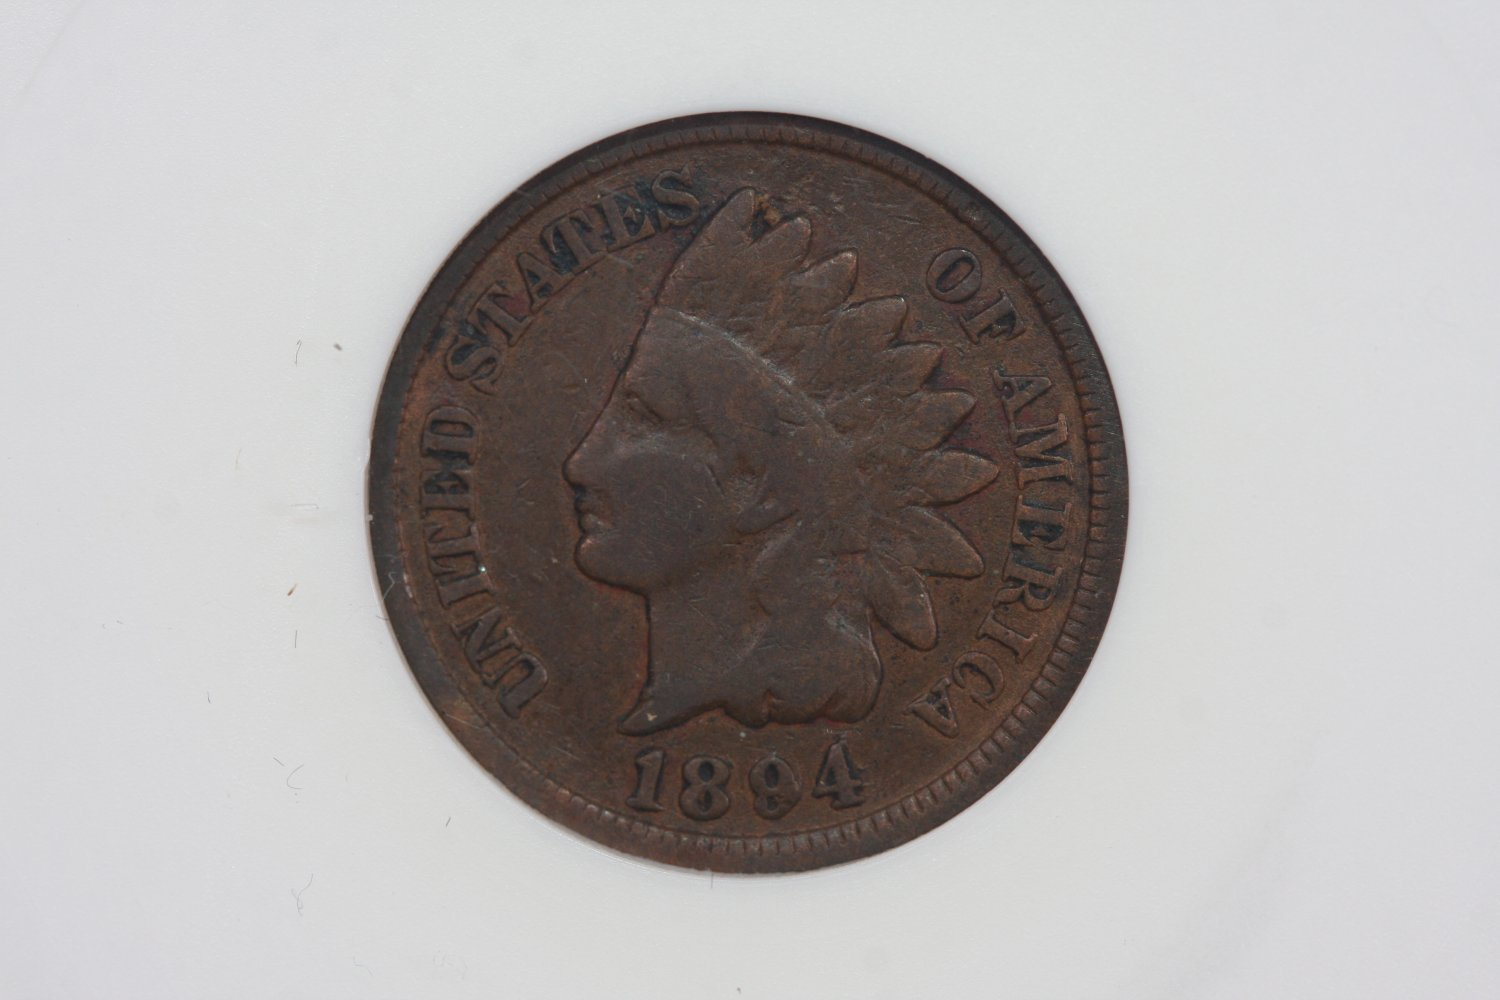 1894/94 Indian Head Cents,  OVER DATE.  ANACS graded VG-8. FS-011